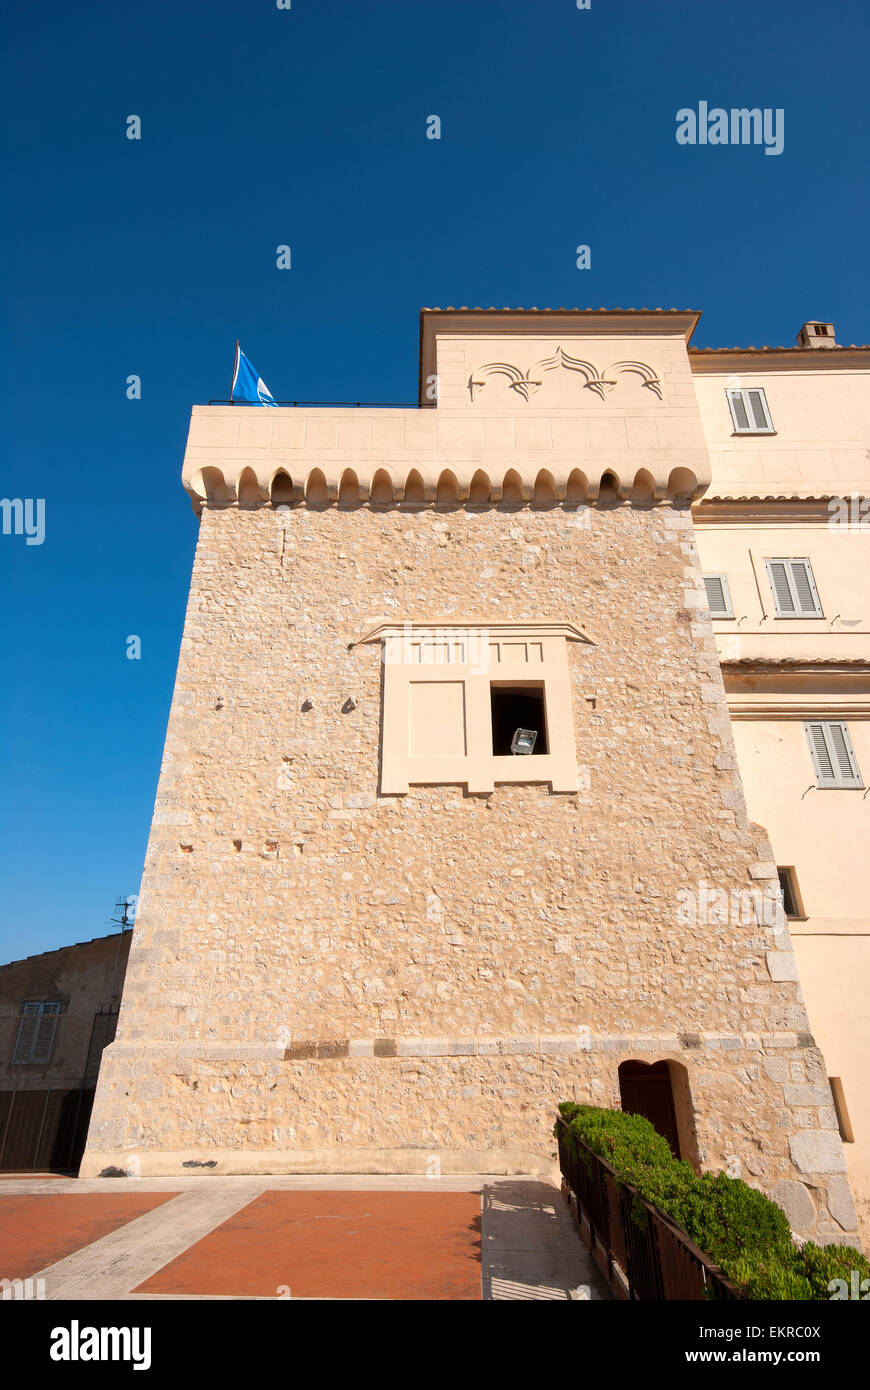 San Felice Circeo,Tower of Templar Knights, Lazio, Italy Stock Photo